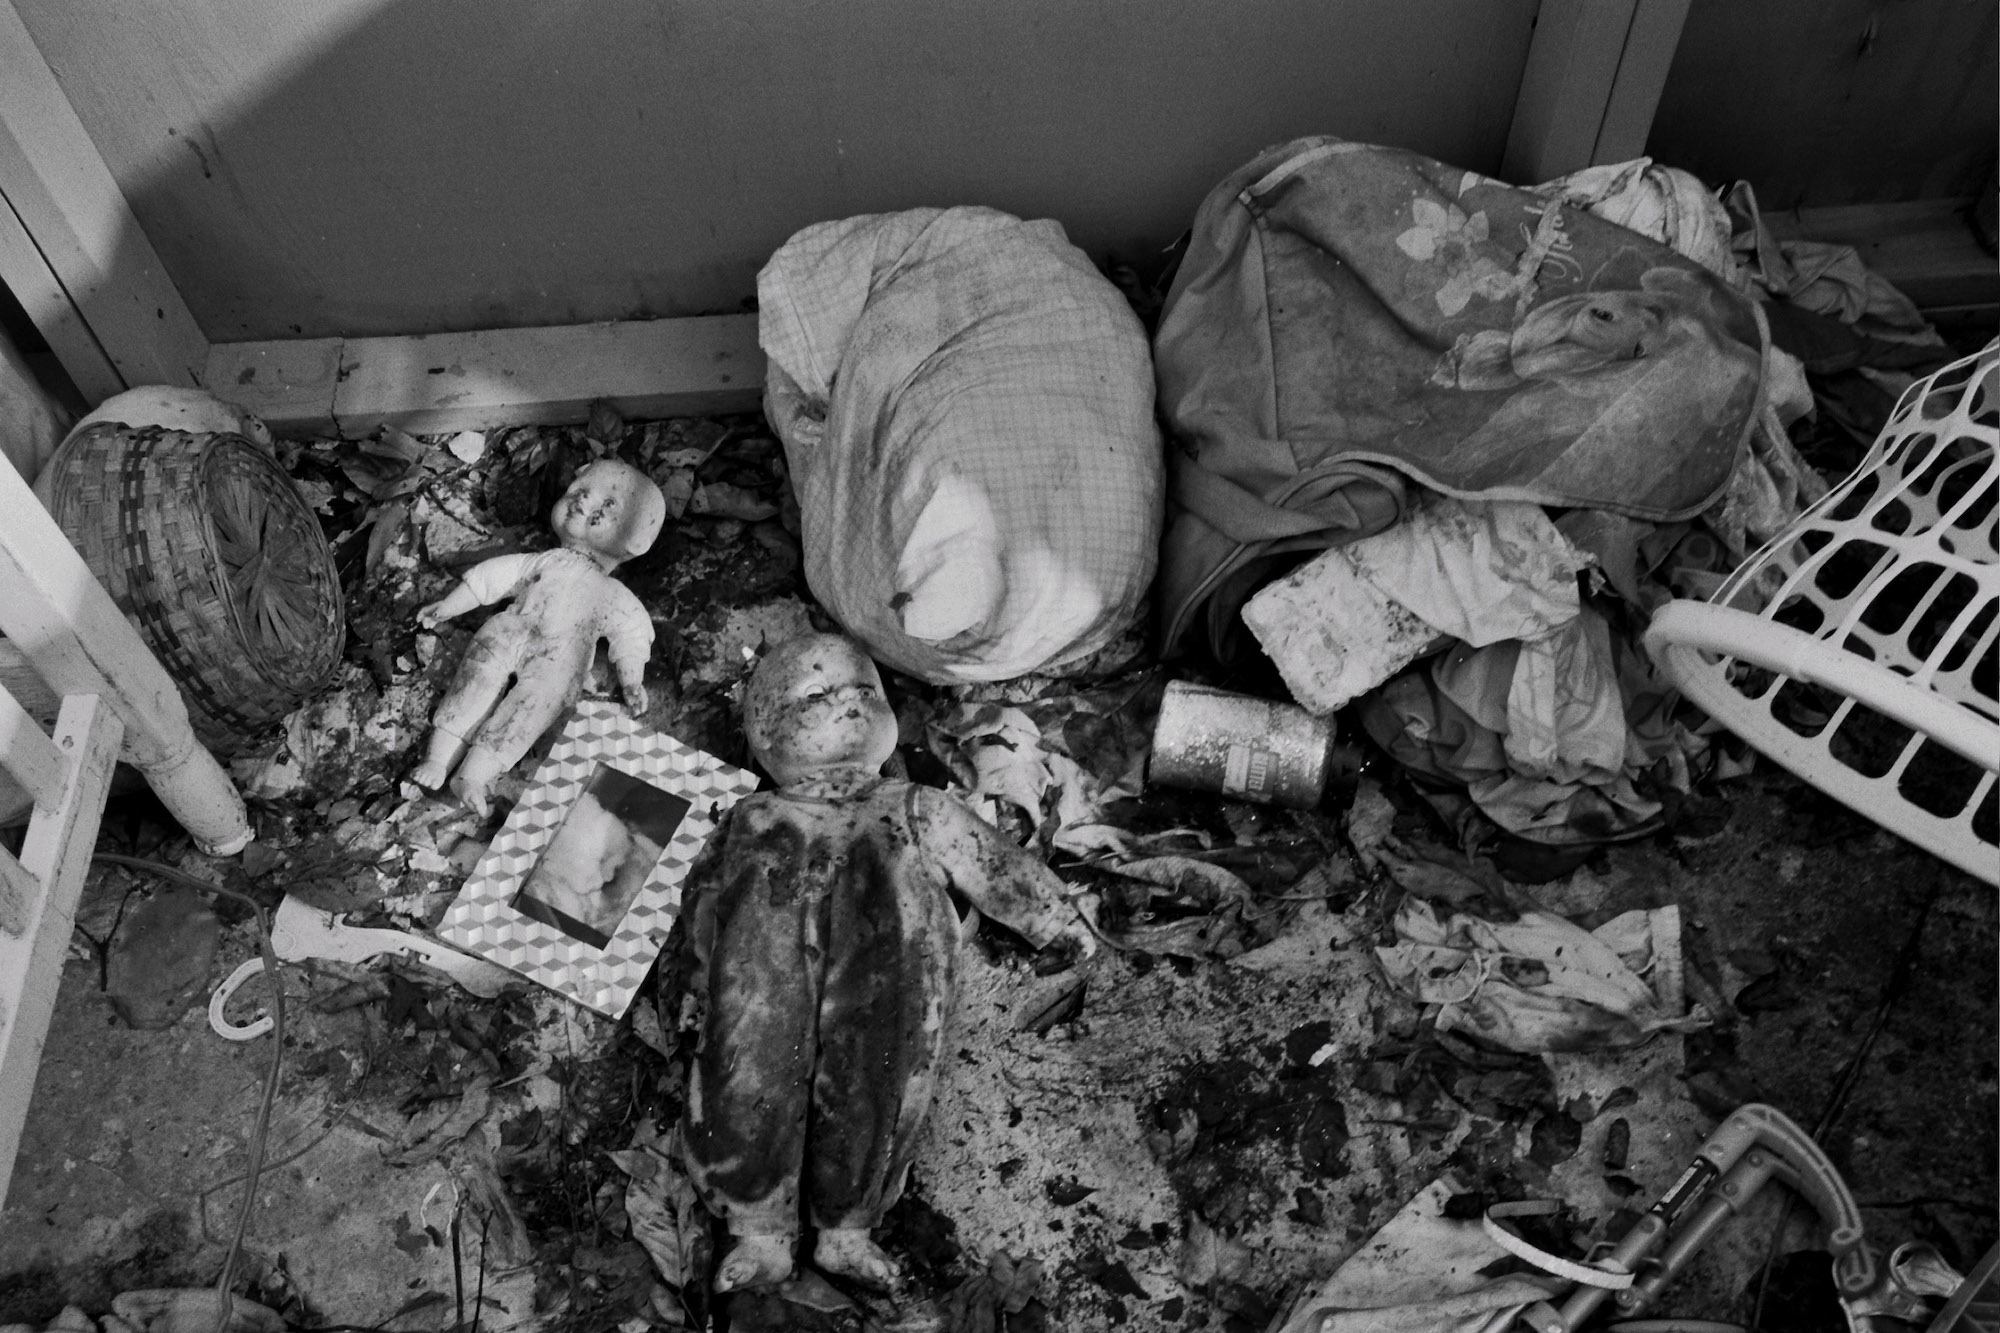 Damaged belongings of Evelyn Burgos's children at their home in Florida, P.R.